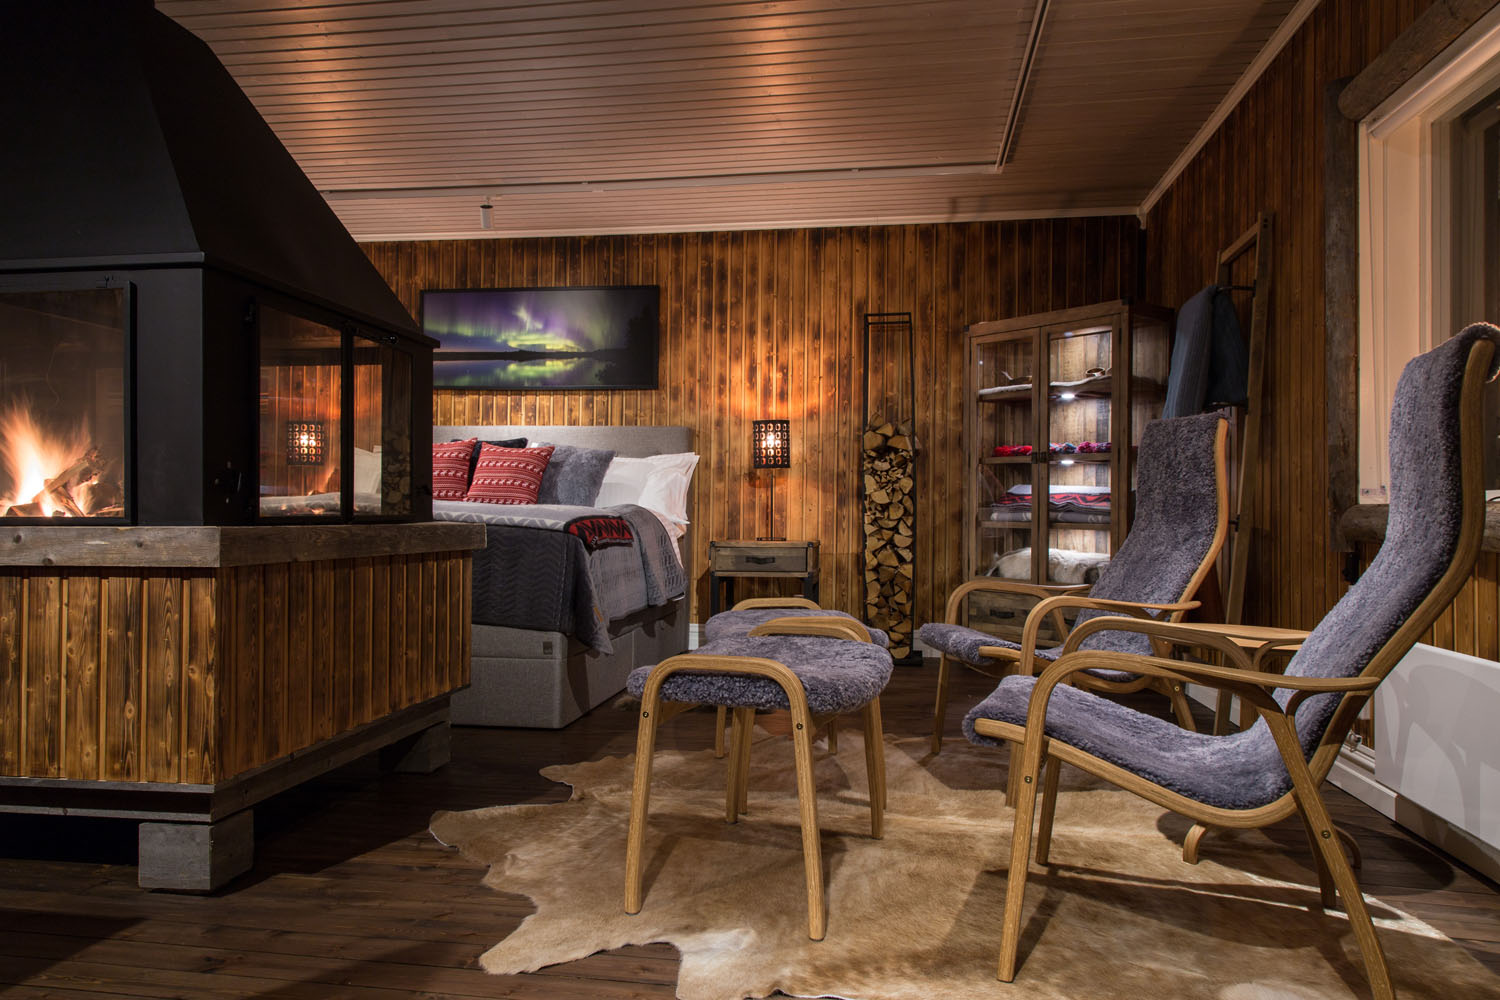 Loggers Lodge's amenities include a king-size continental bed sleeping two people.